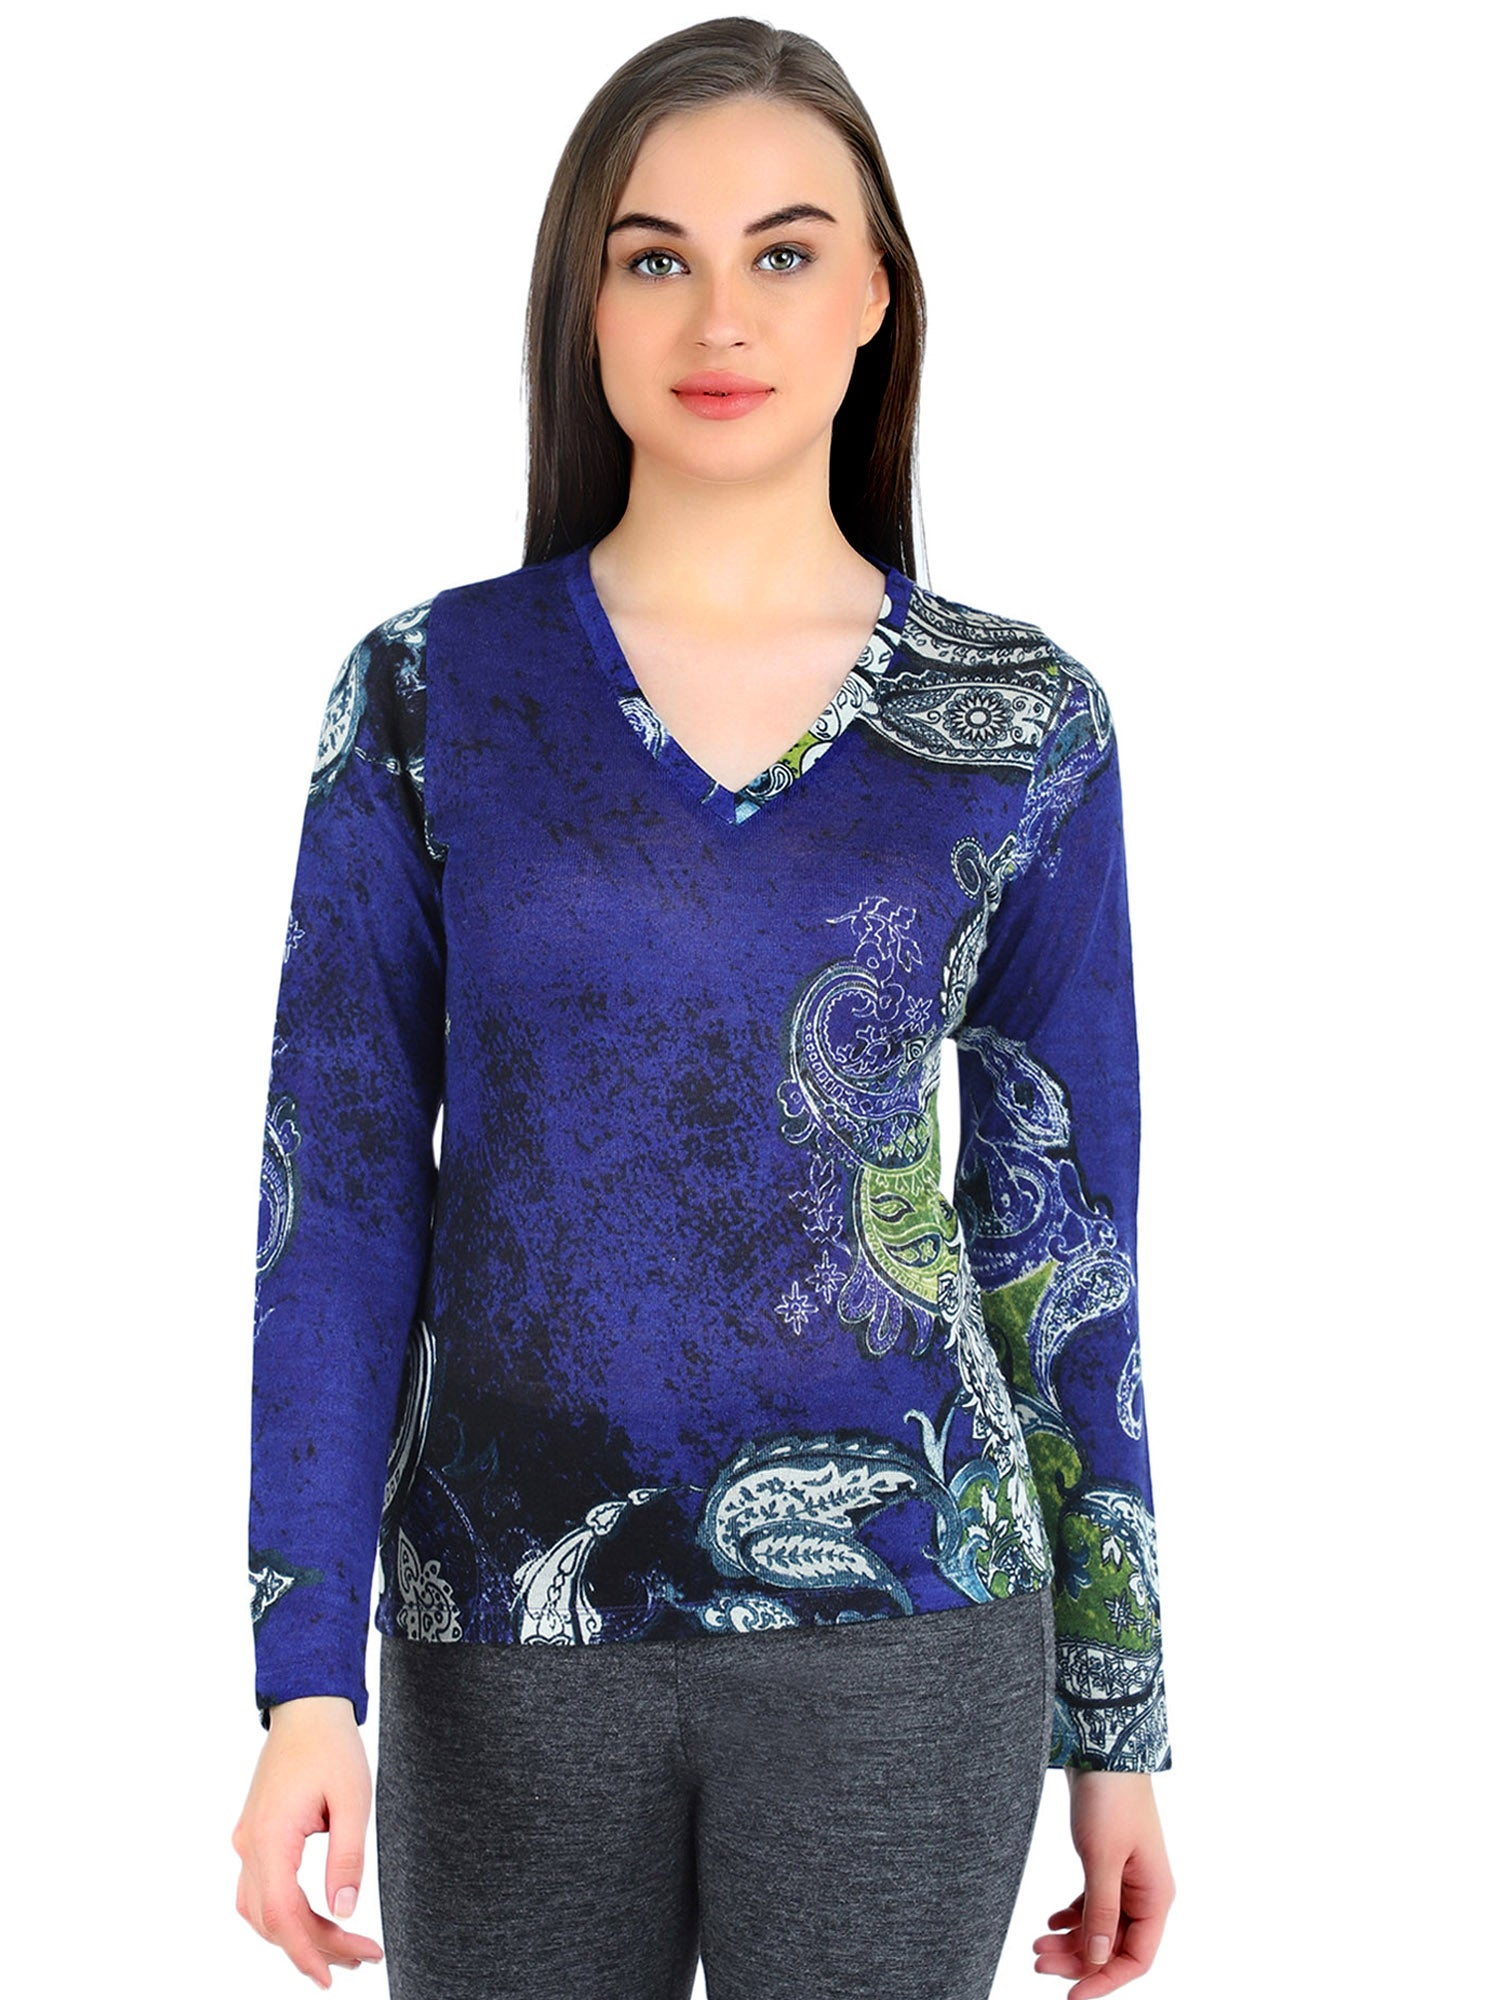 Pashma Blue Silk Wool Cashmere V- Neck with paisley print.